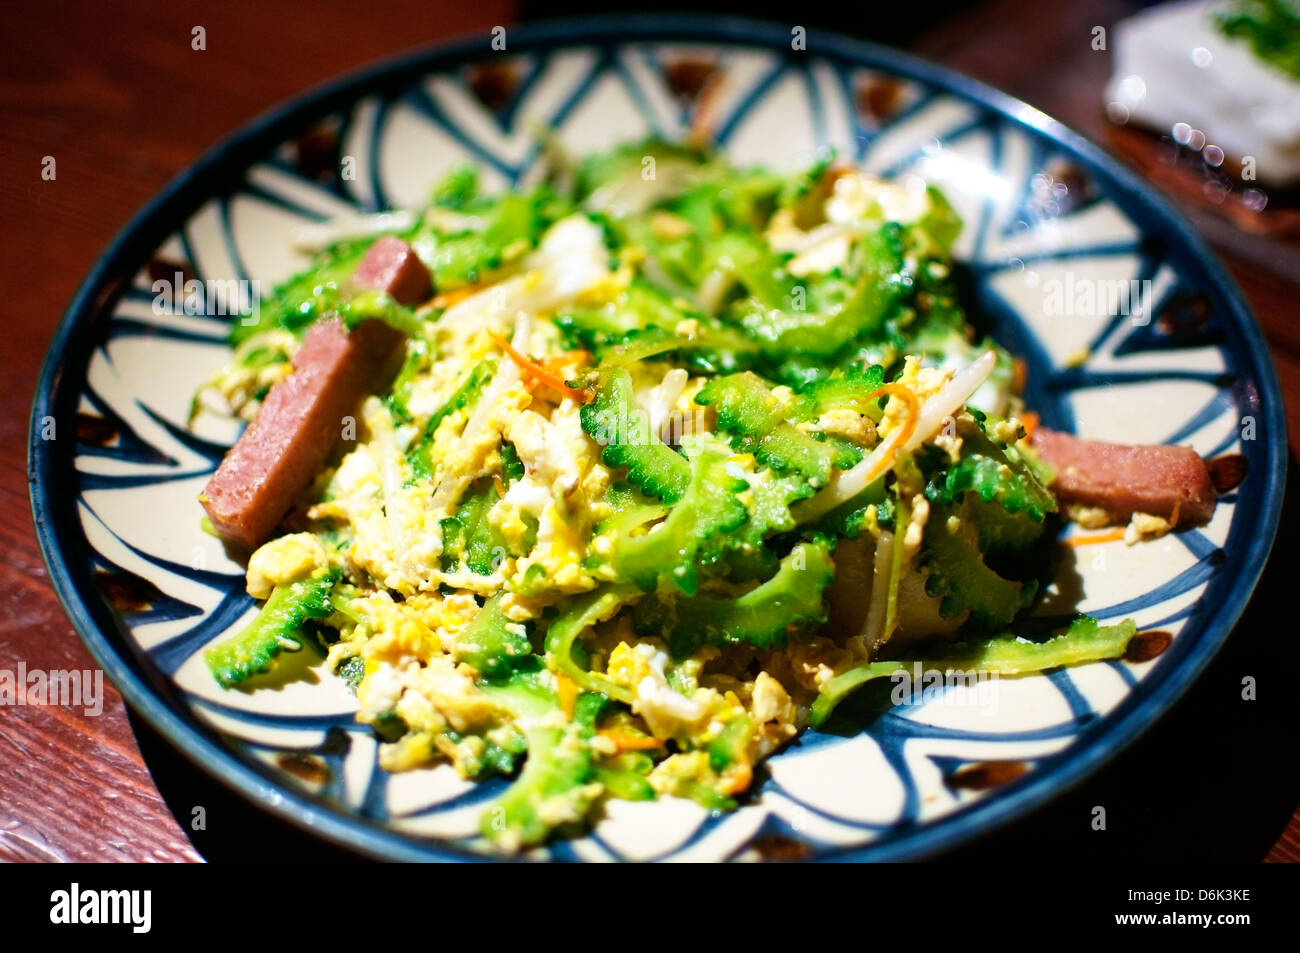 Goya Chanpuru, a typical okinawan Dish. It is Goya fruit with Tofu, Egg and Meat. - Stock Image